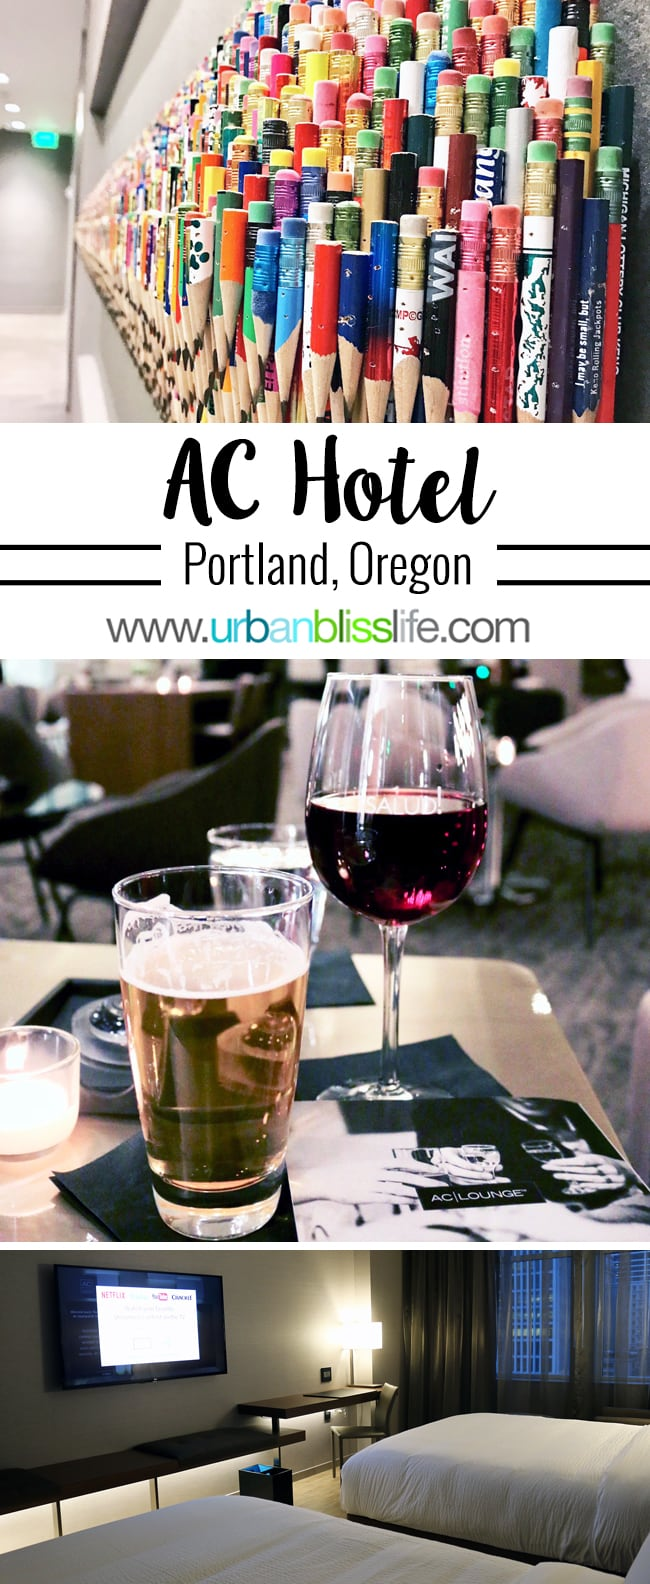 Boutique Hotels Portland - AC Hotel Portland Downtown Hotel review on UrbanBlissLife.com